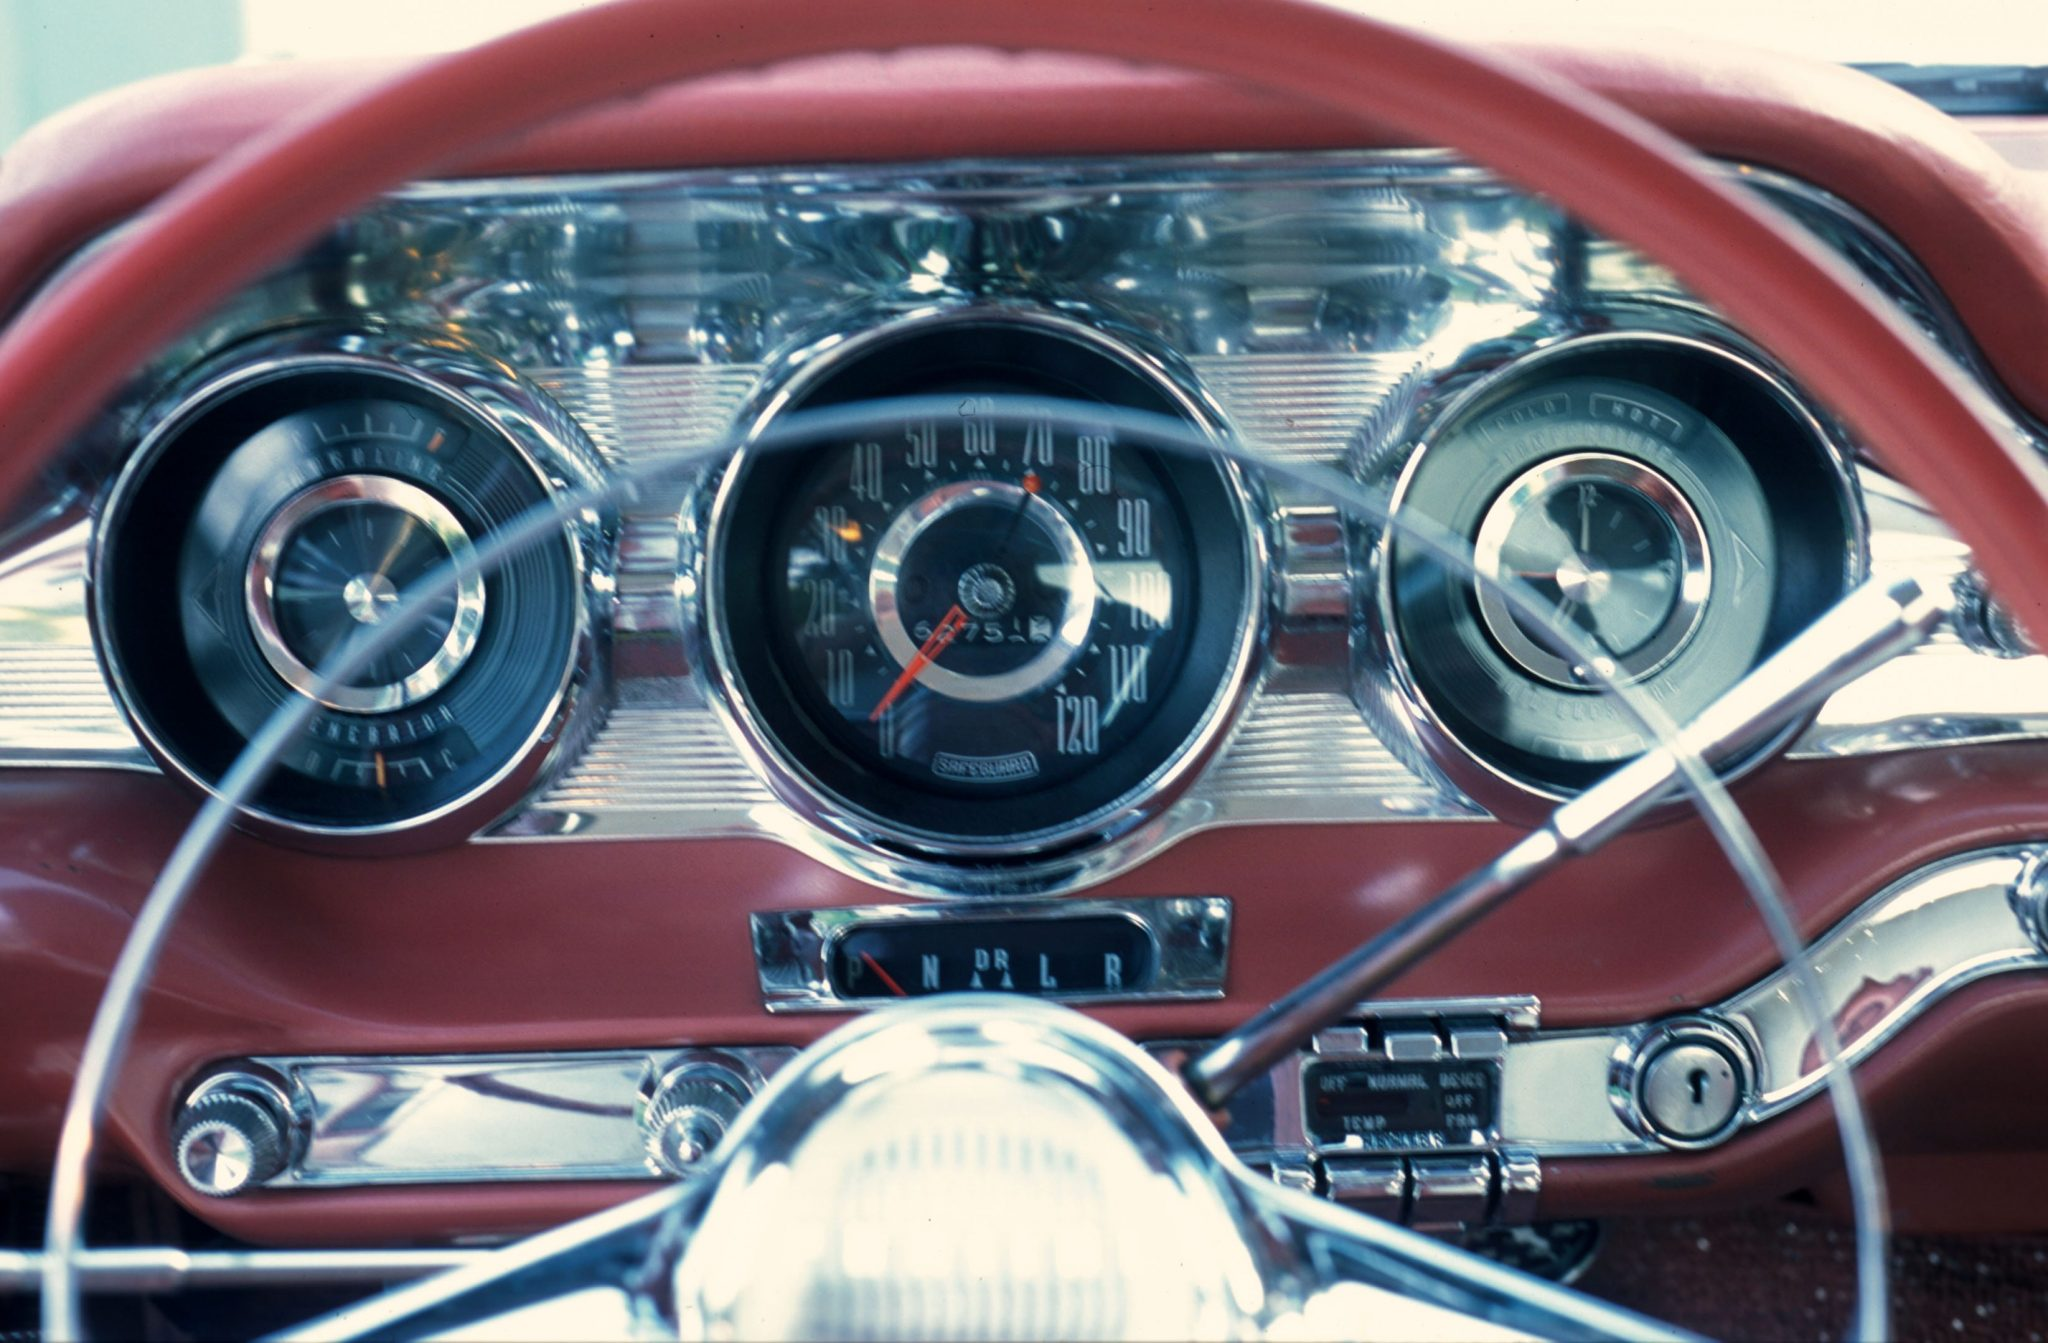 1959 Pontiac Bonneville Dash and Gauges